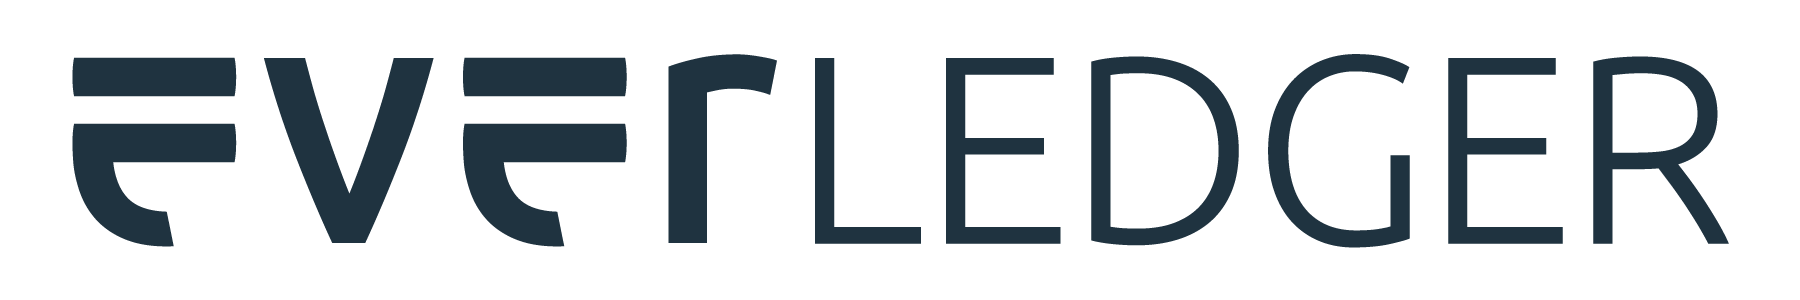 Everledger logo